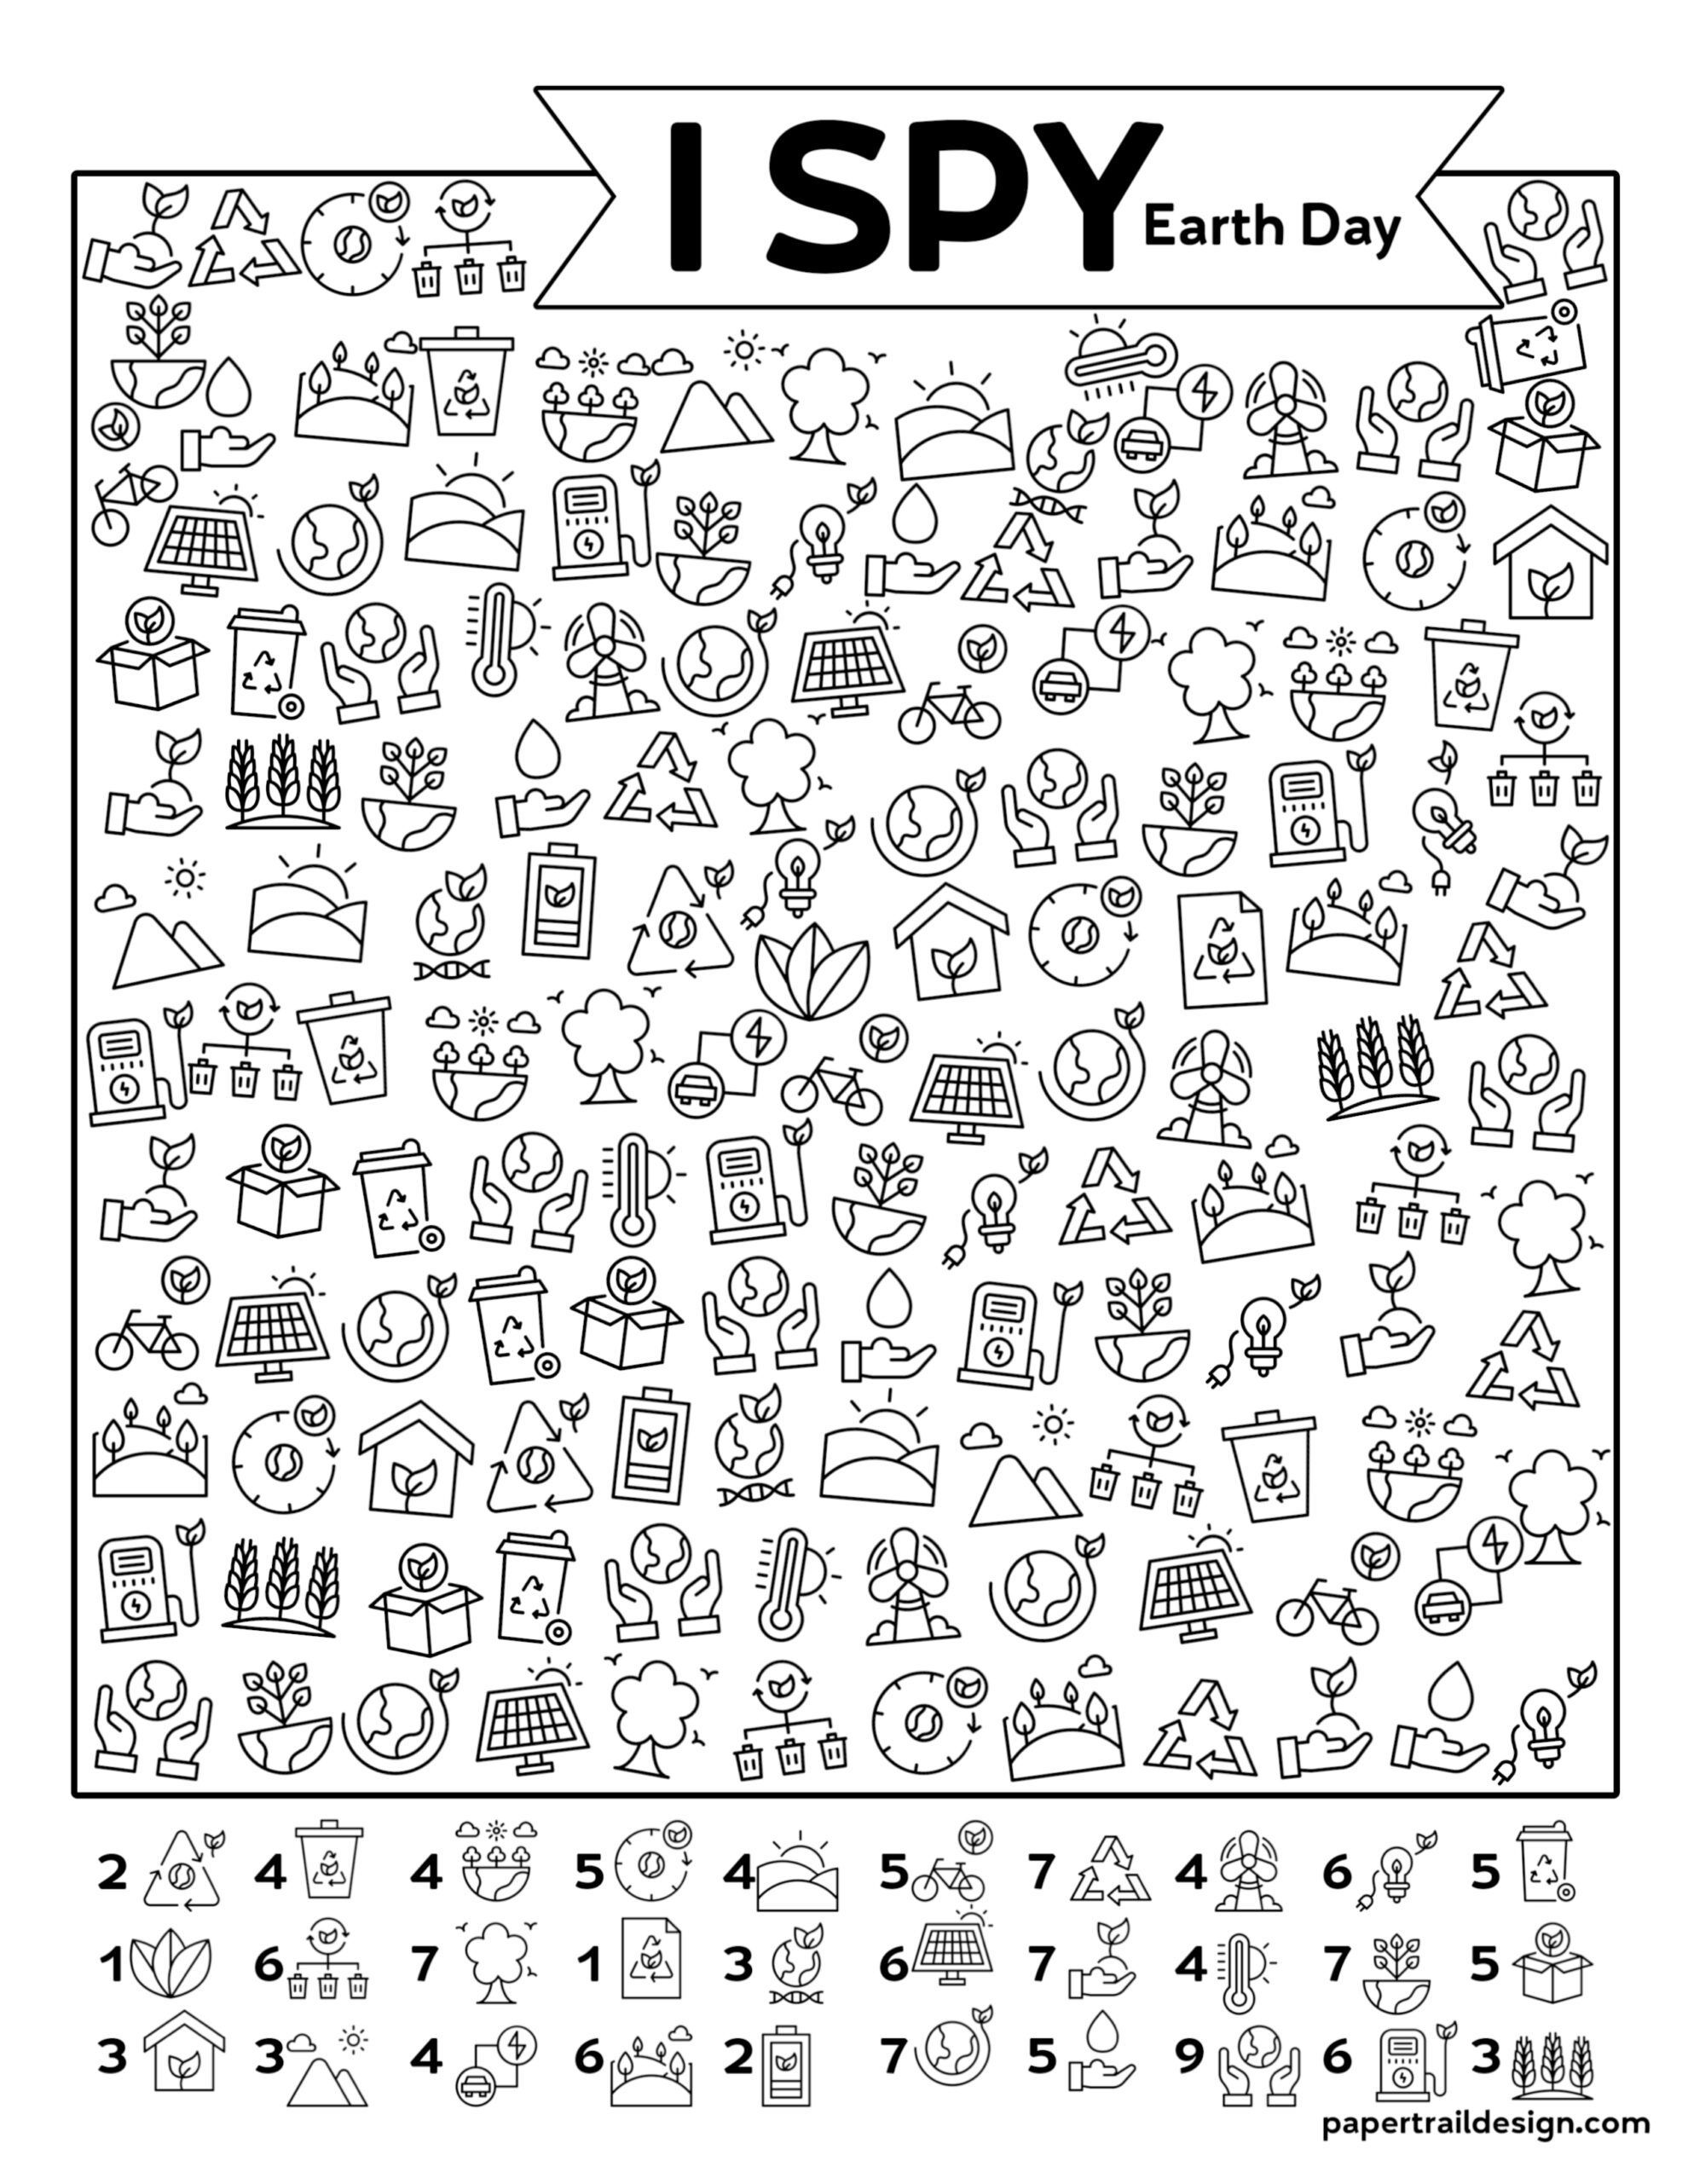 Free Printable I Spy Earth Day Activity Paper Trail Design In 2021 Earth Day Activities Earth Day Projects Earth Day Coloring Pages [ 2562 x 1980 Pixel ]